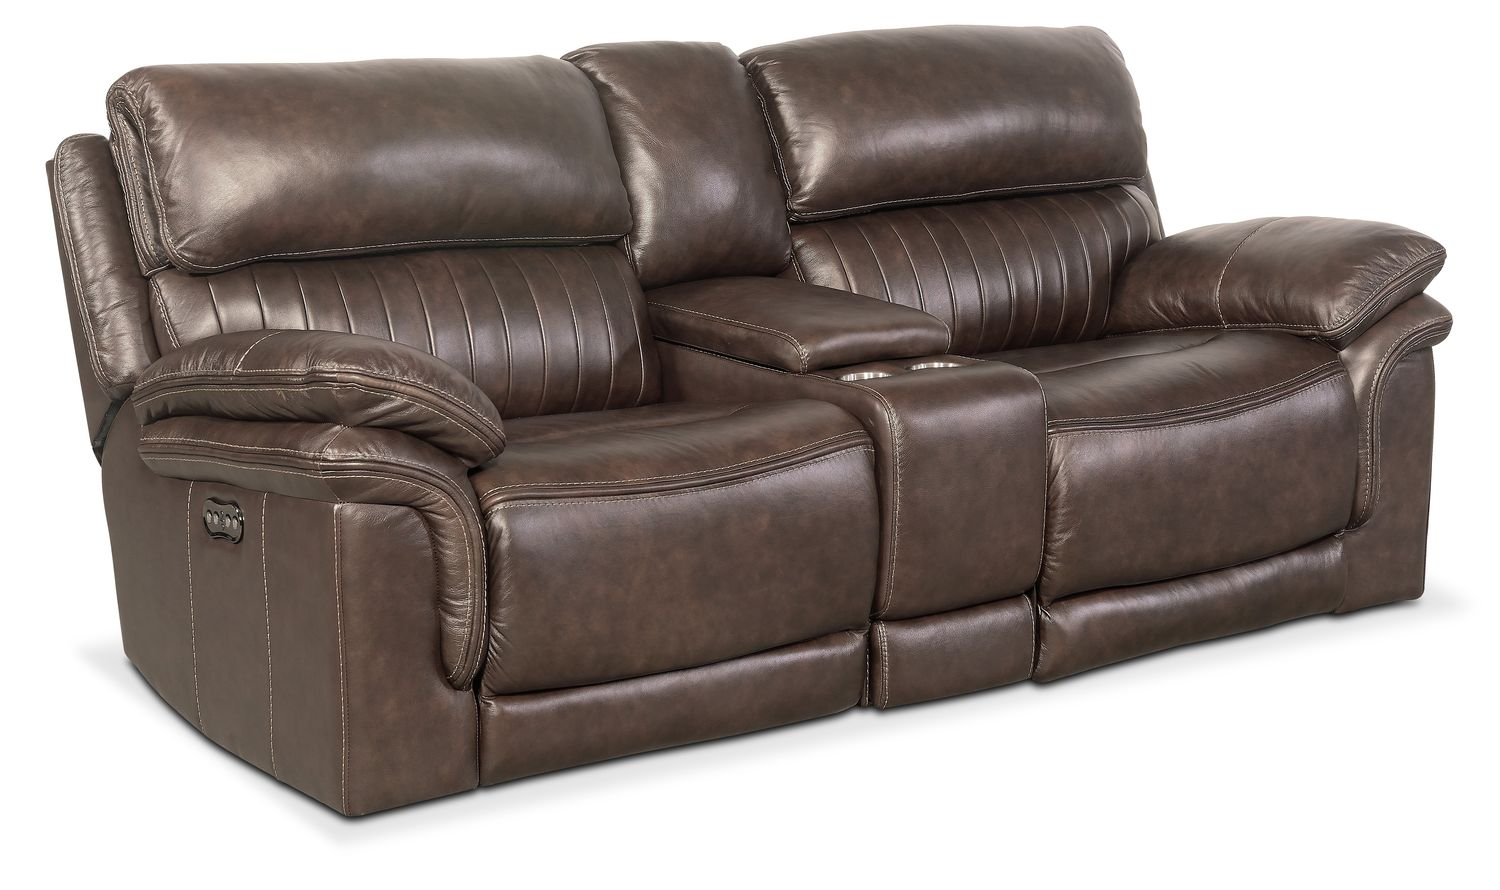 Living Room Furniture - Monterey 3-Piece Power Sofa with Console - Brown